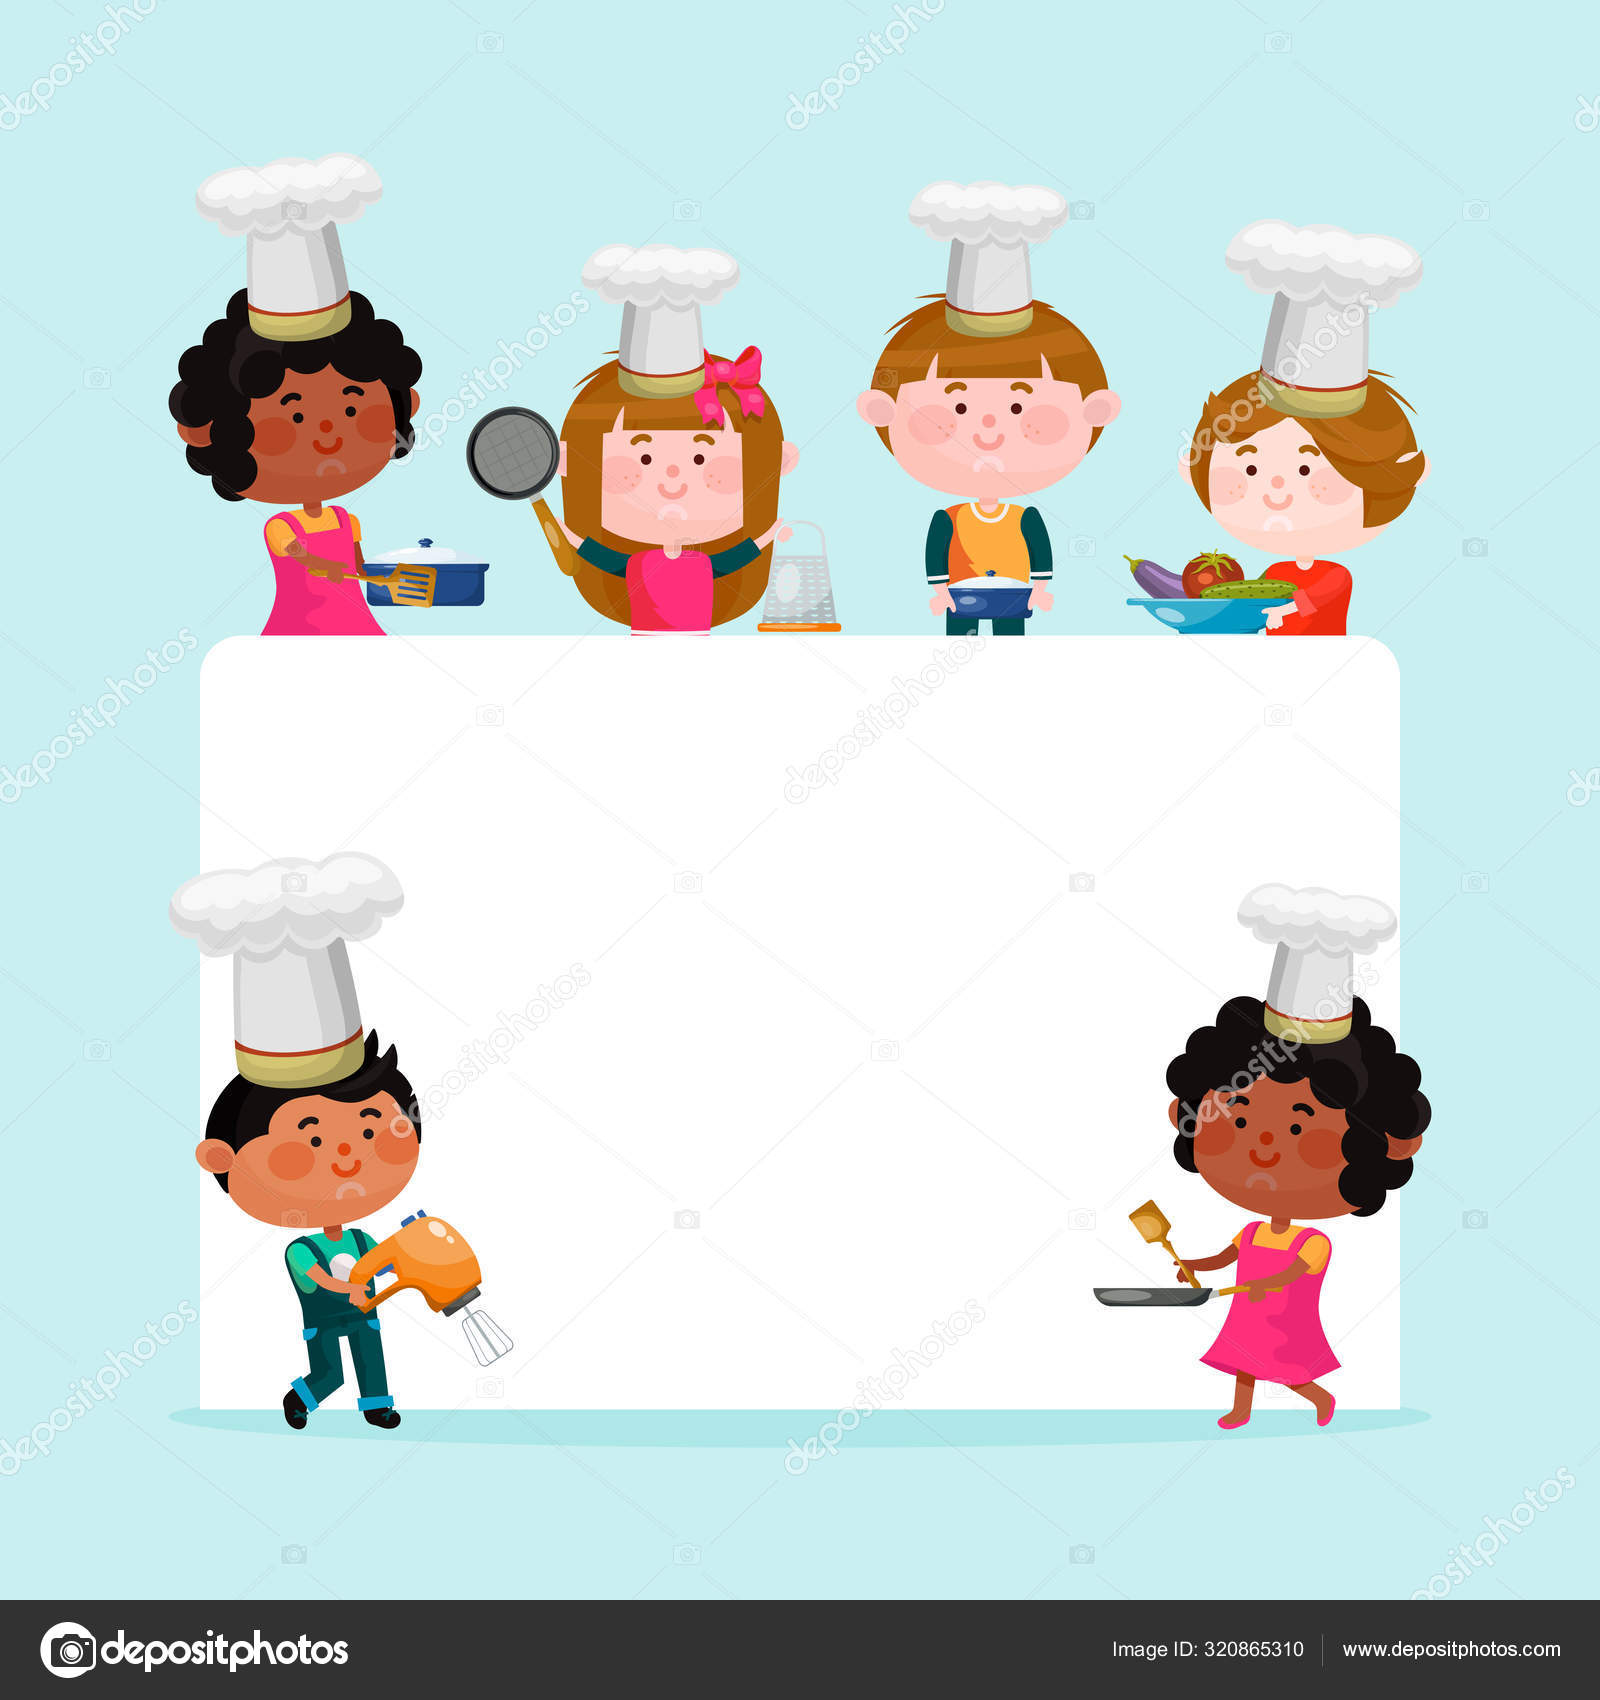 Chefs Kids Cooking Classes Template Vector Illustration Cartoon Characters Kids In Hats Around Empty List Of Paper For Text Little Chefs Background Templates For Menu Or Banner Stock Vector C Vectordreamsmachine 320865310